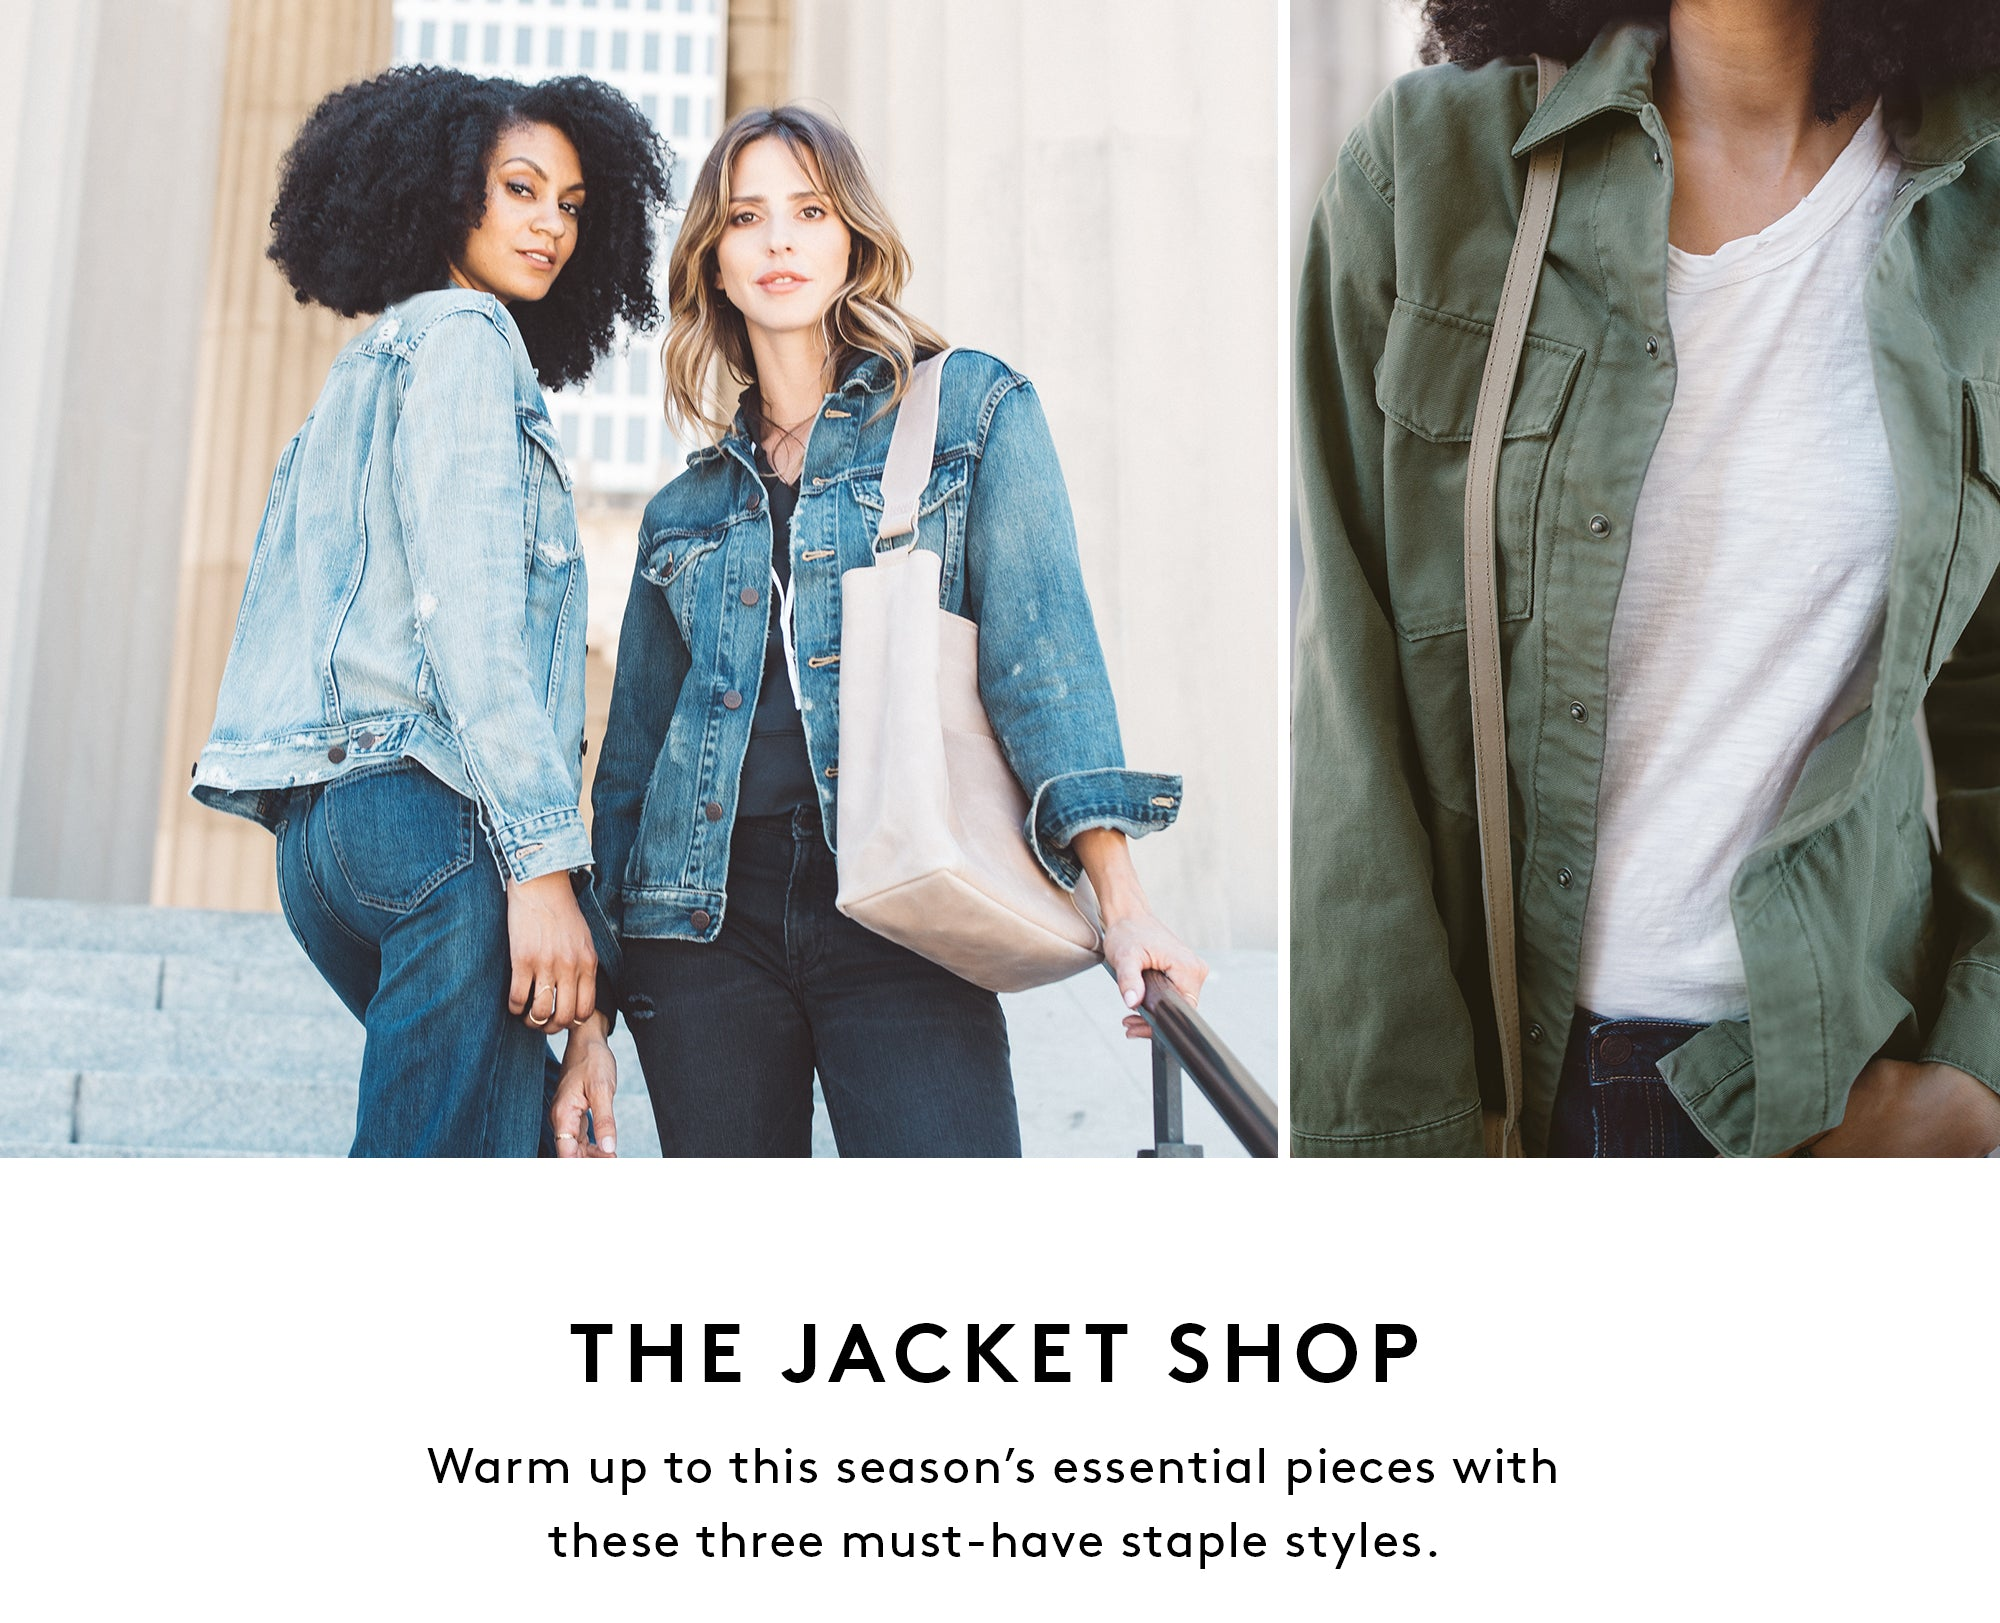 The Jacket Shop